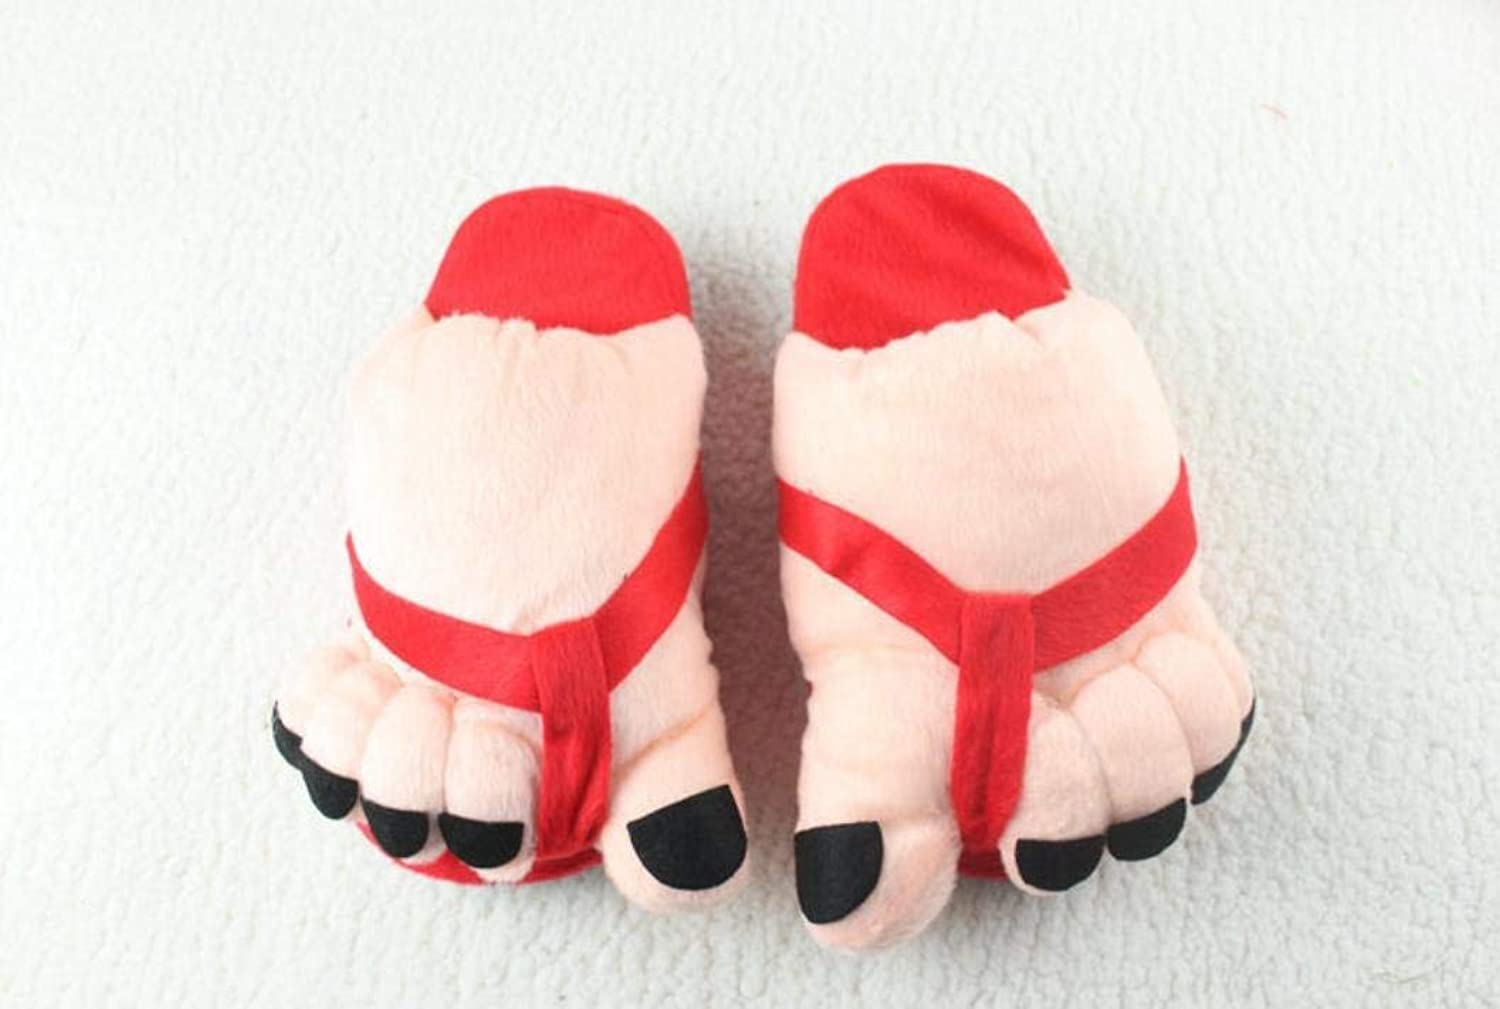 JaHGDU Ladies Casual Cute Toes Style Appearant Slippers Super Soft Plush Paws Comfortable Special Design Home Leisure Cotton Slippers